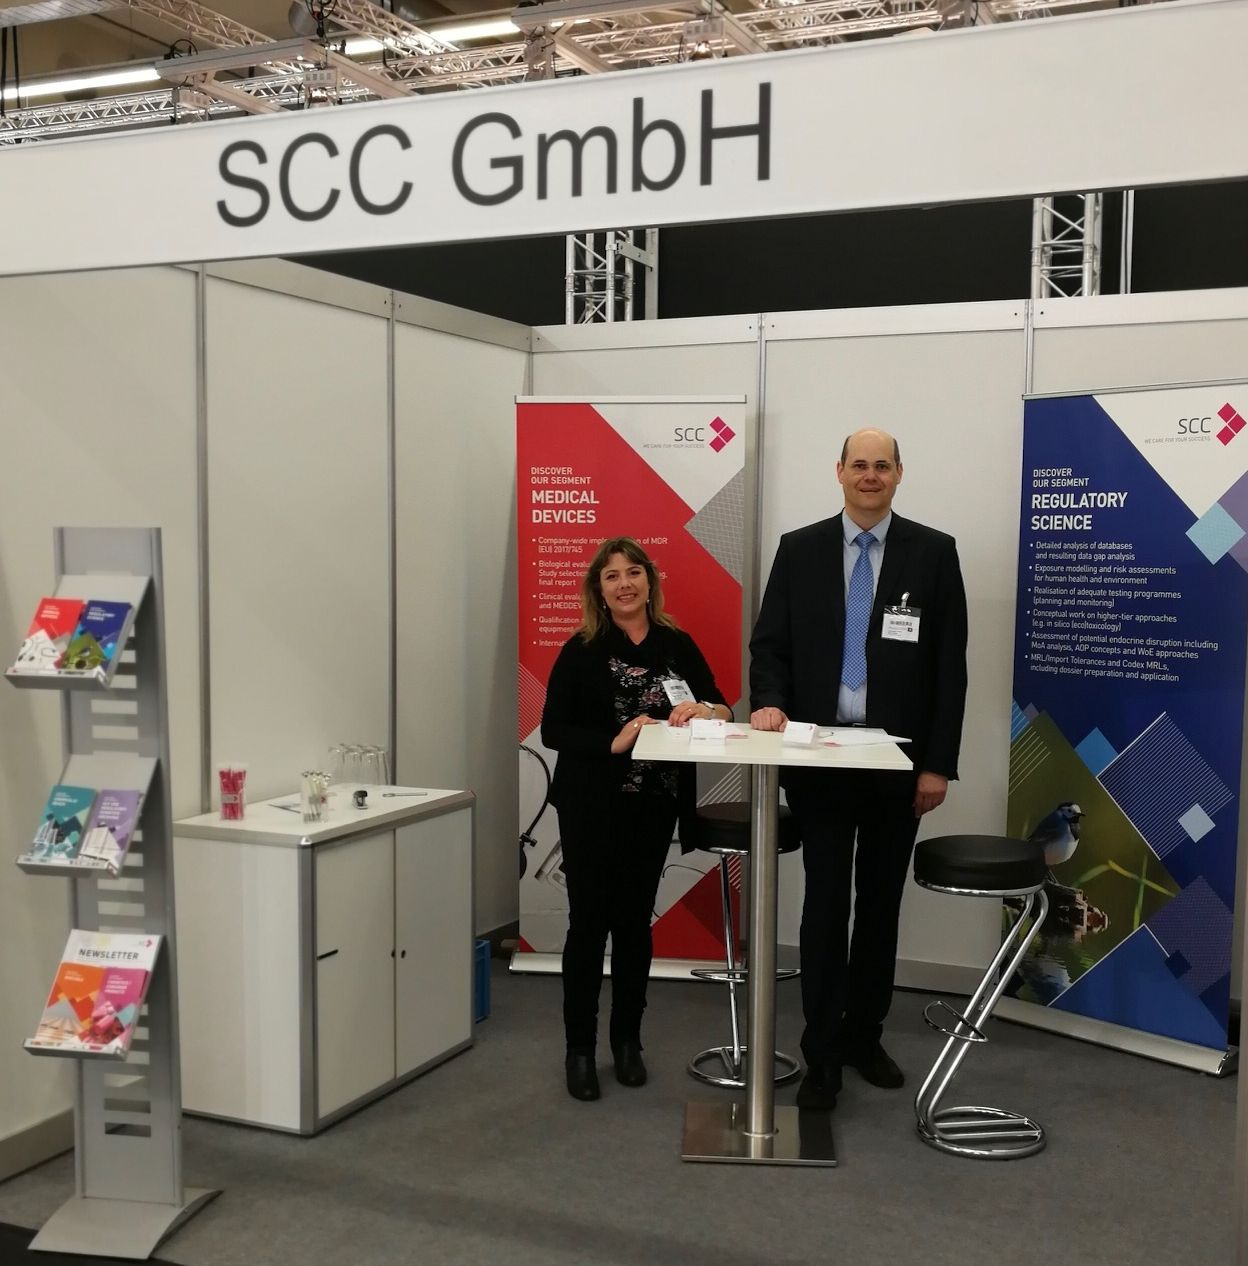 SCC booth at MedtecLIVE